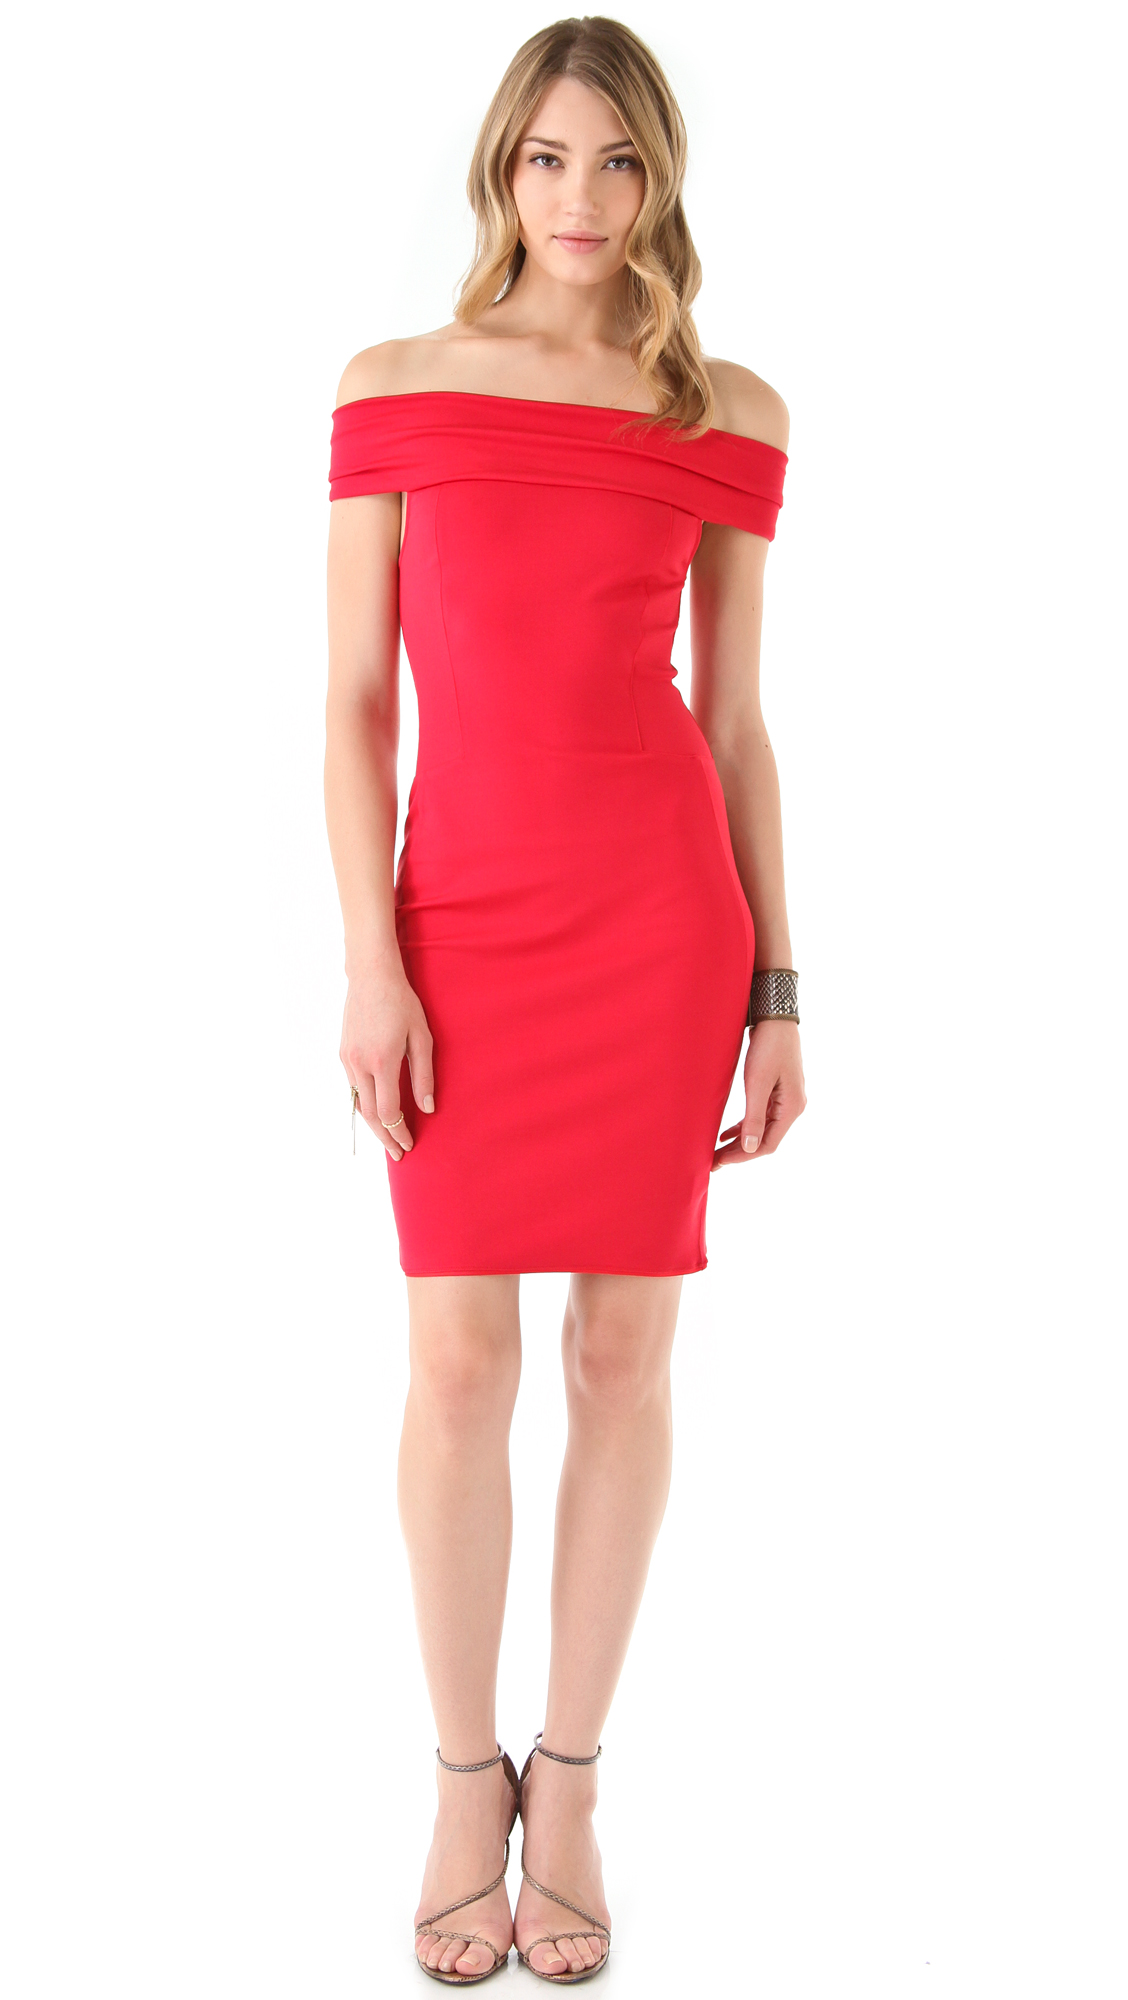 Halston Off The Shoulder Dress in Red | Lyst